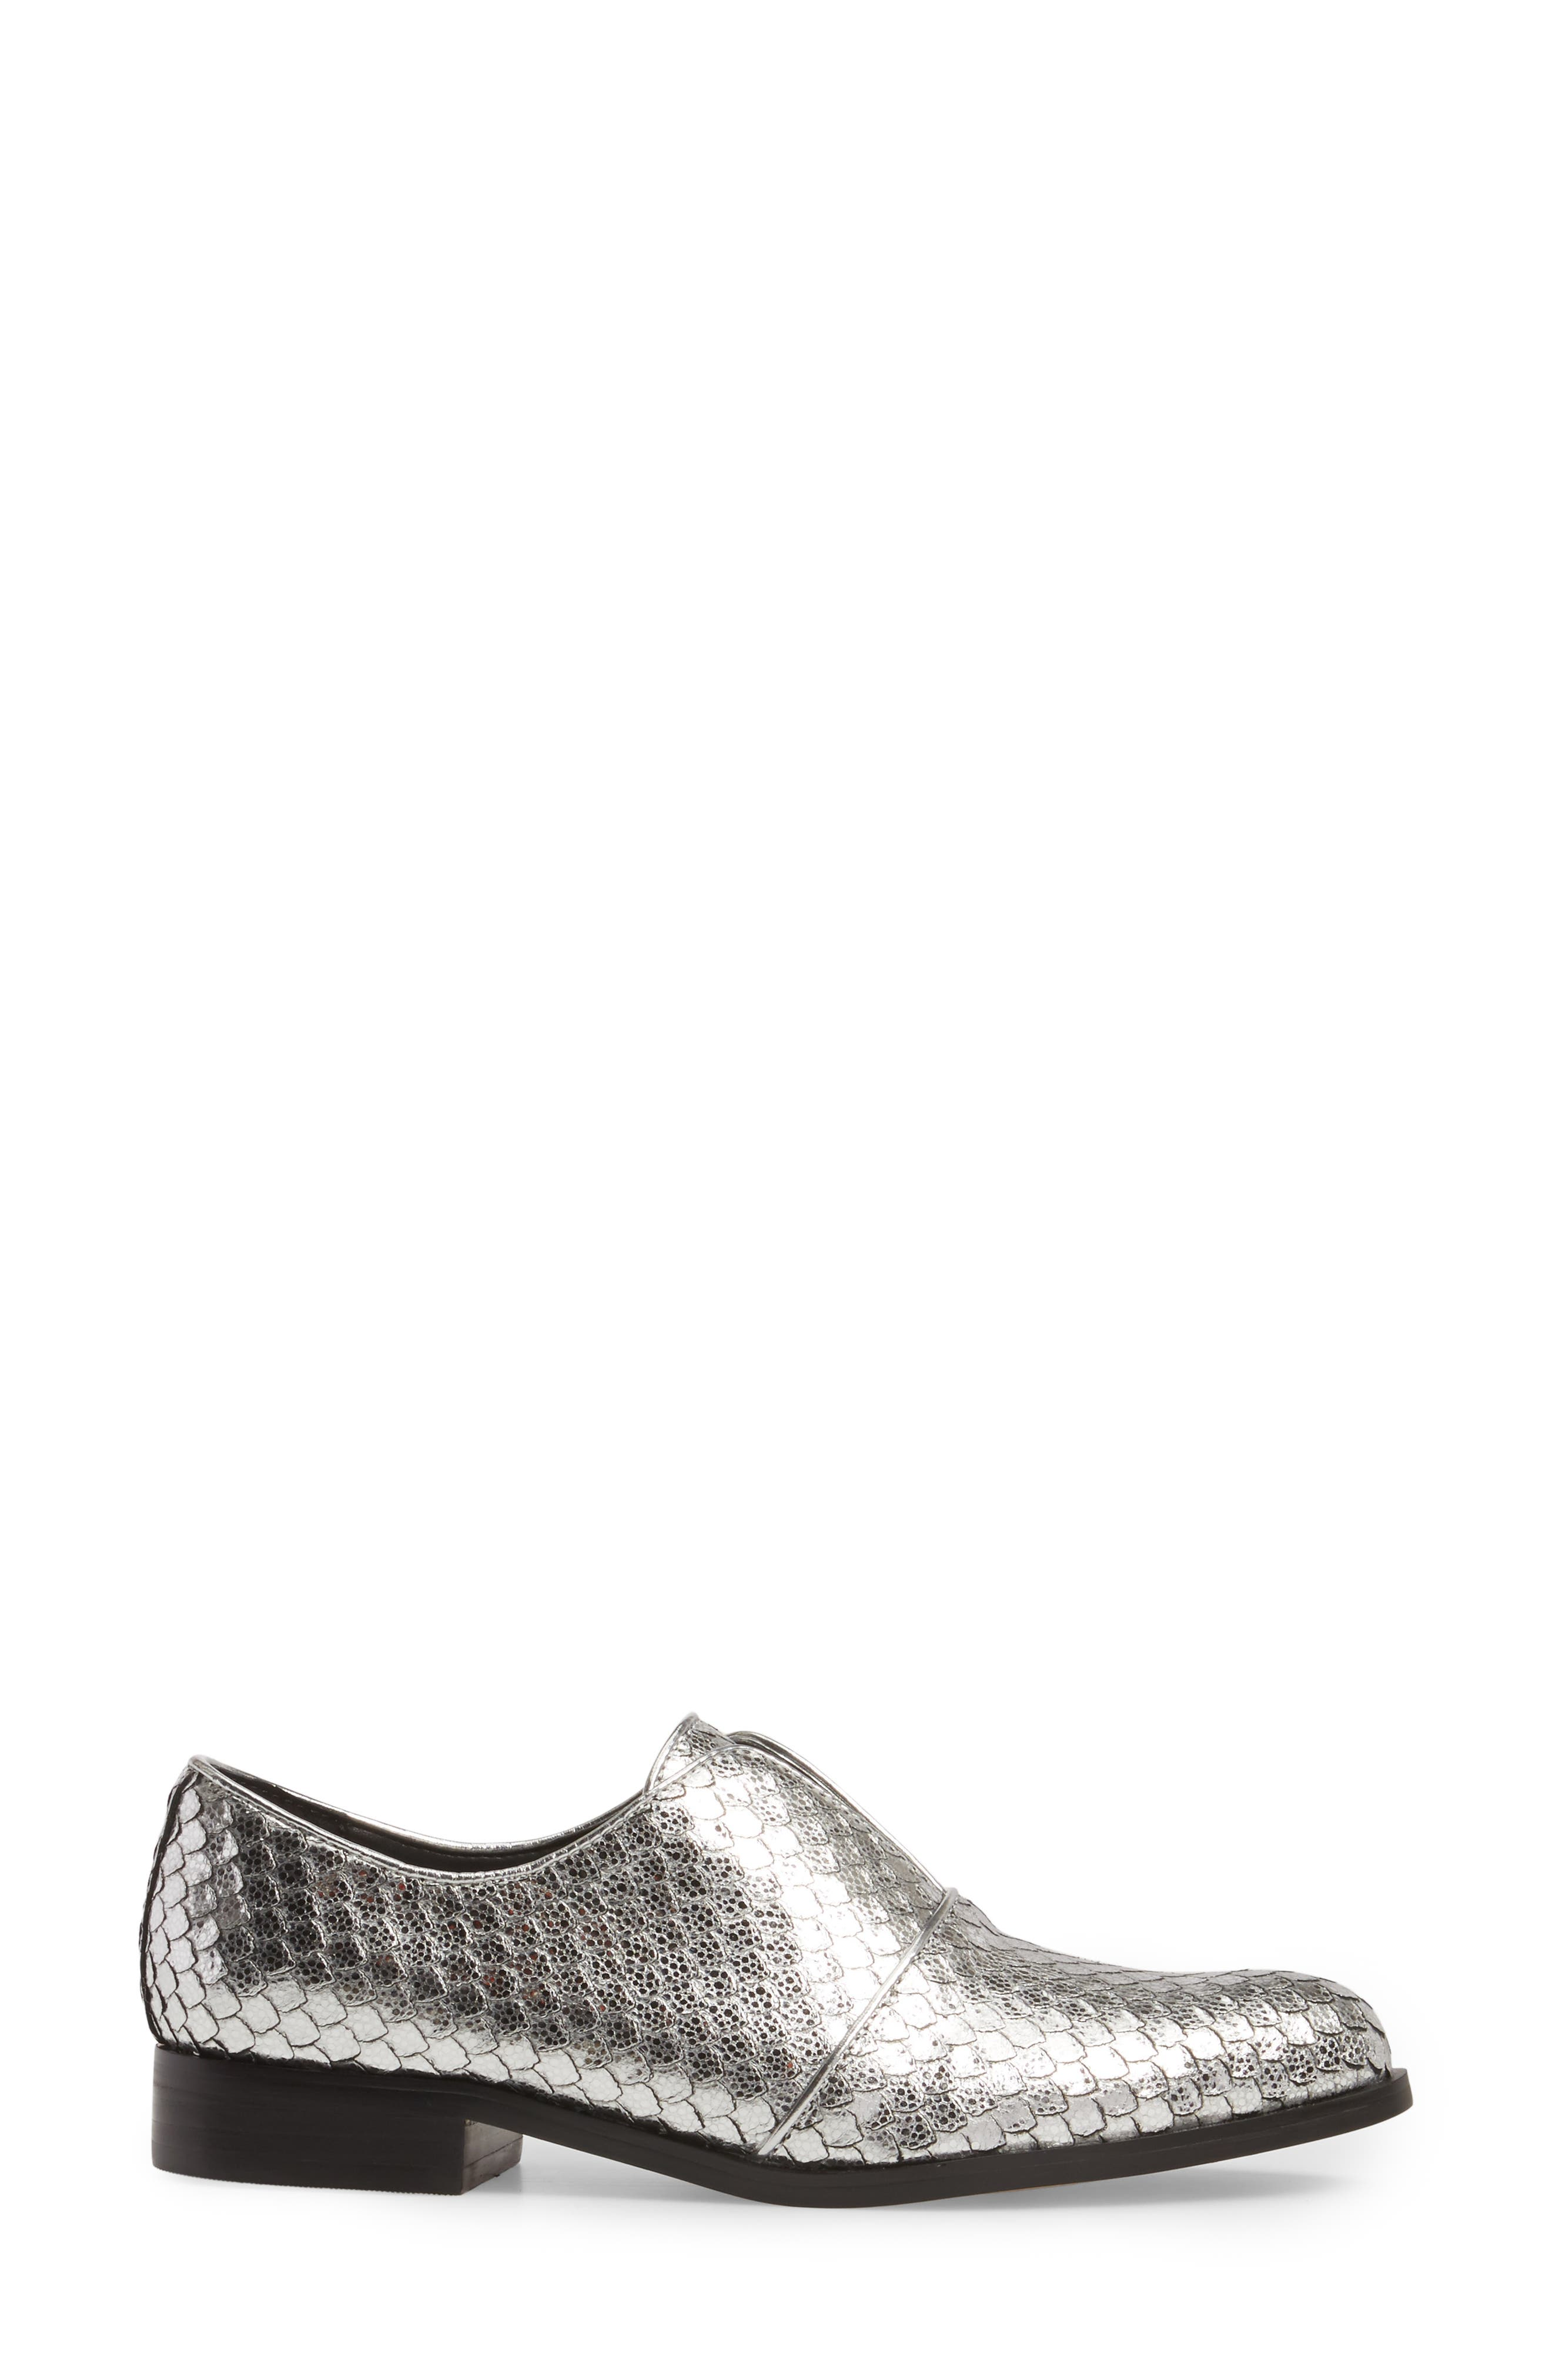 Isola Maria Slip-On Oxford,                             Alternate thumbnail 3, color,                             Silver Cut Snake Print Leather